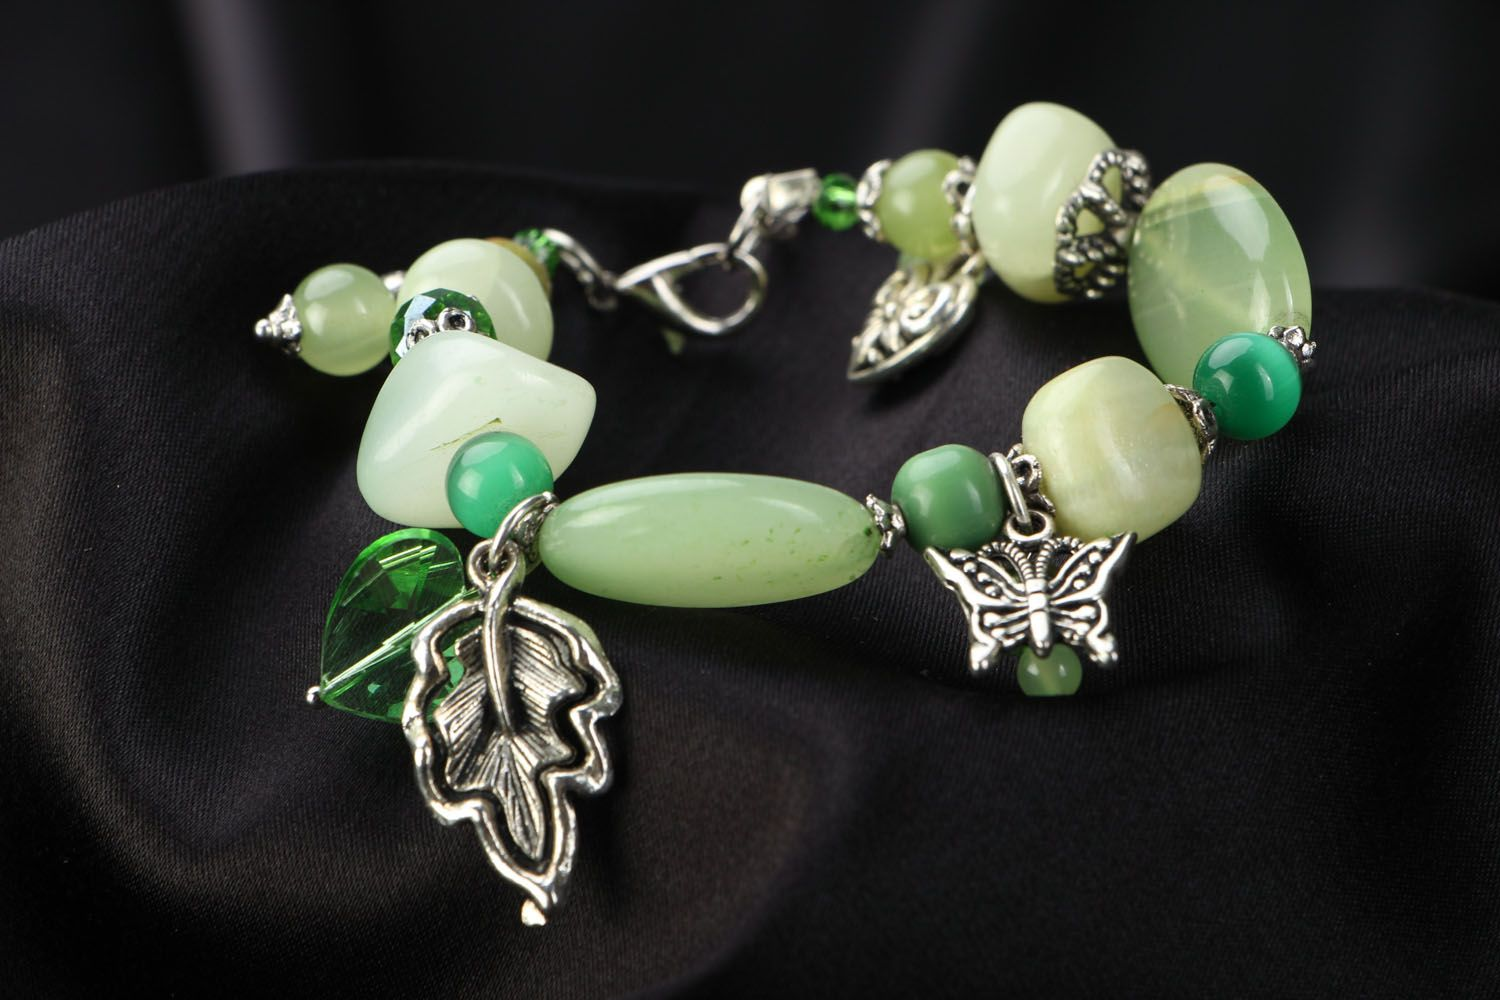 Handmade bracelet with metal charms photo 2